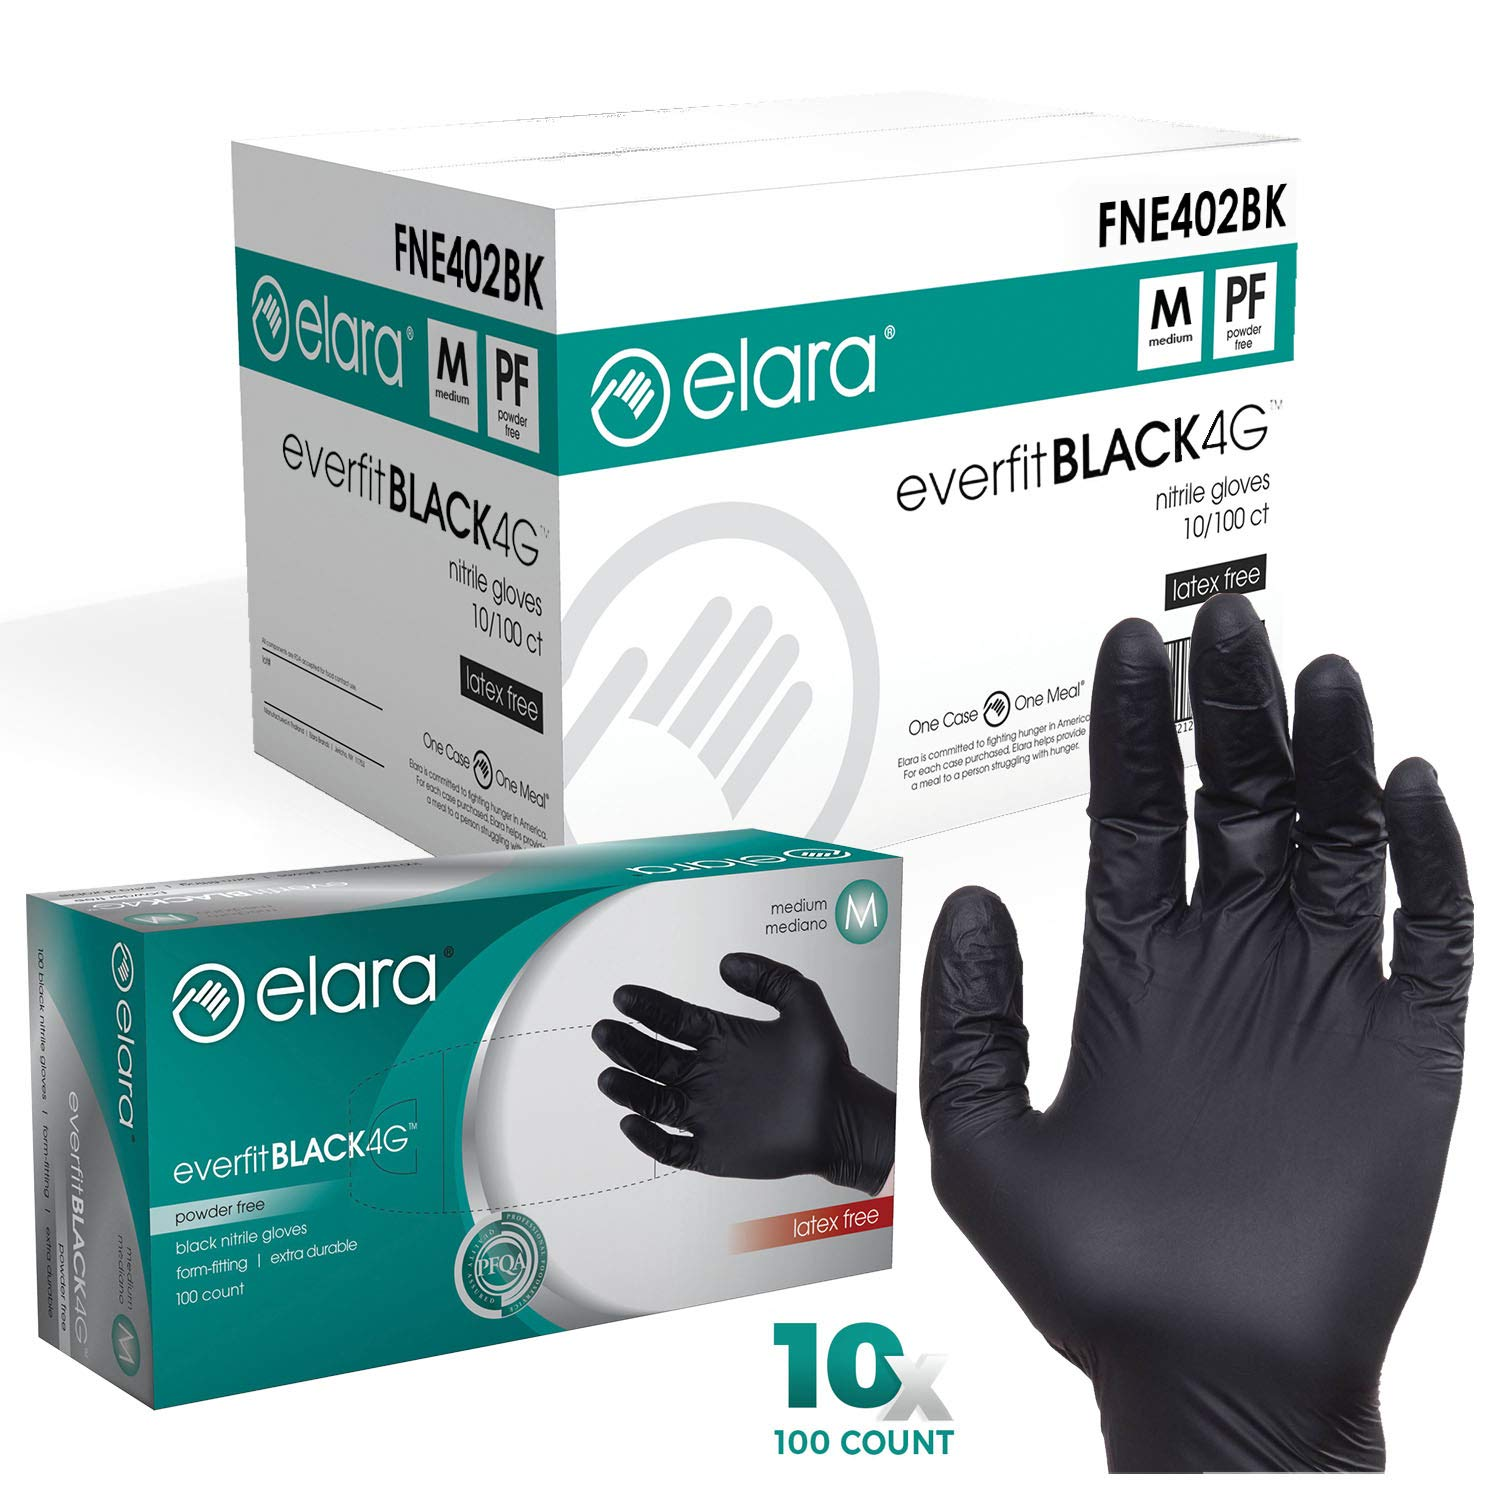 Elara FNE402BK EverfitBLACK4G Nitrile Disposable Gloves, 4 mil, Black, Powder Free, Food Safe, Non-Latex, Size Medium, Case of 1000 by Elara